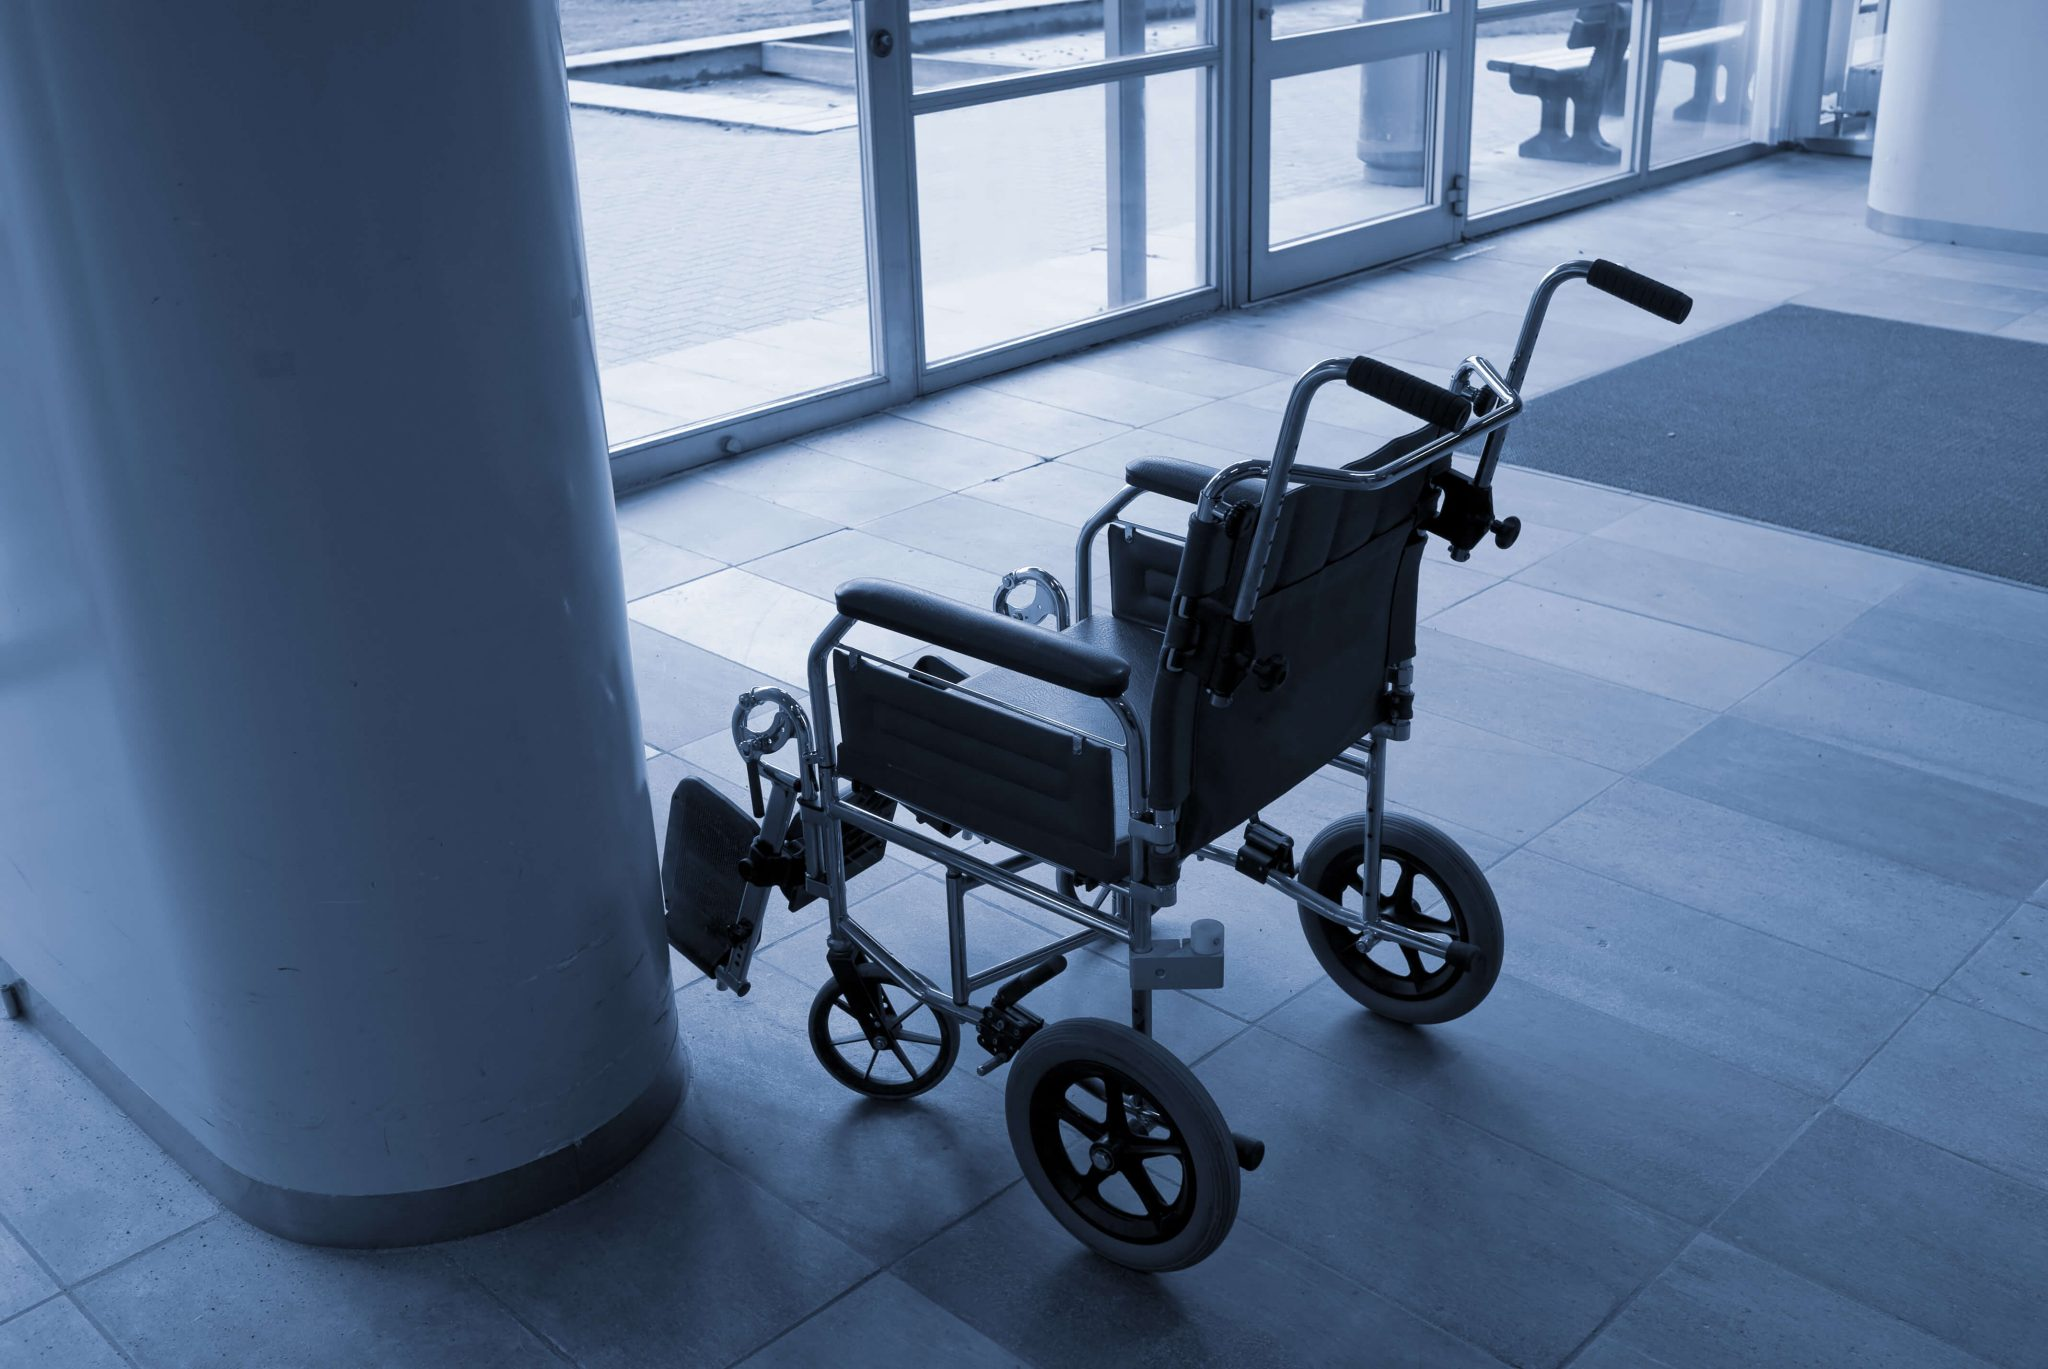 Empty Wheelchair in Philadelphia Hospital